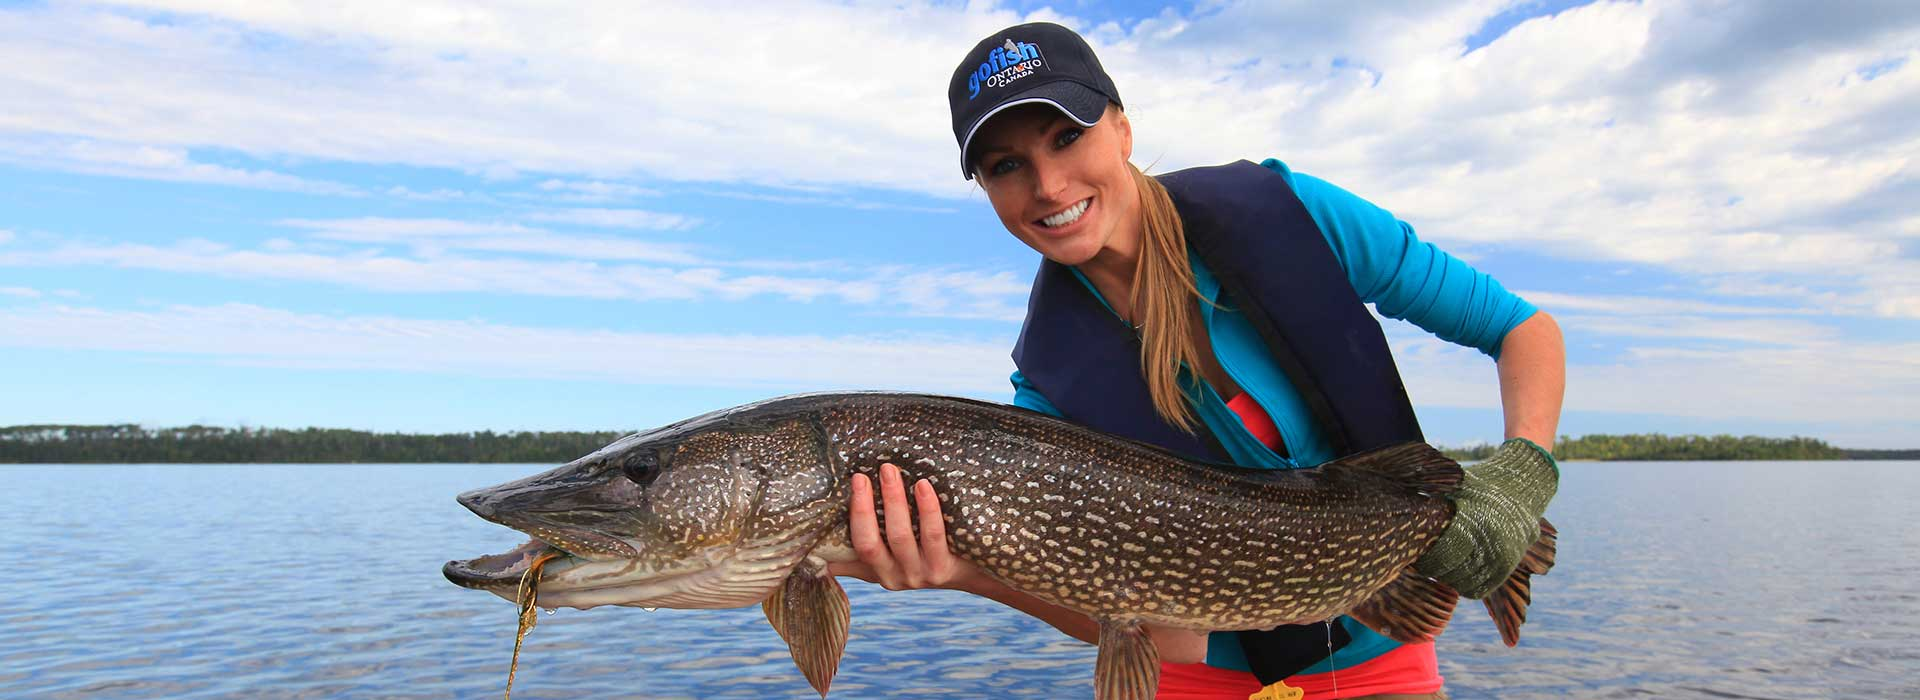 Northern pike fishing algoma northern ontario canada for Best canadian fishing lodges